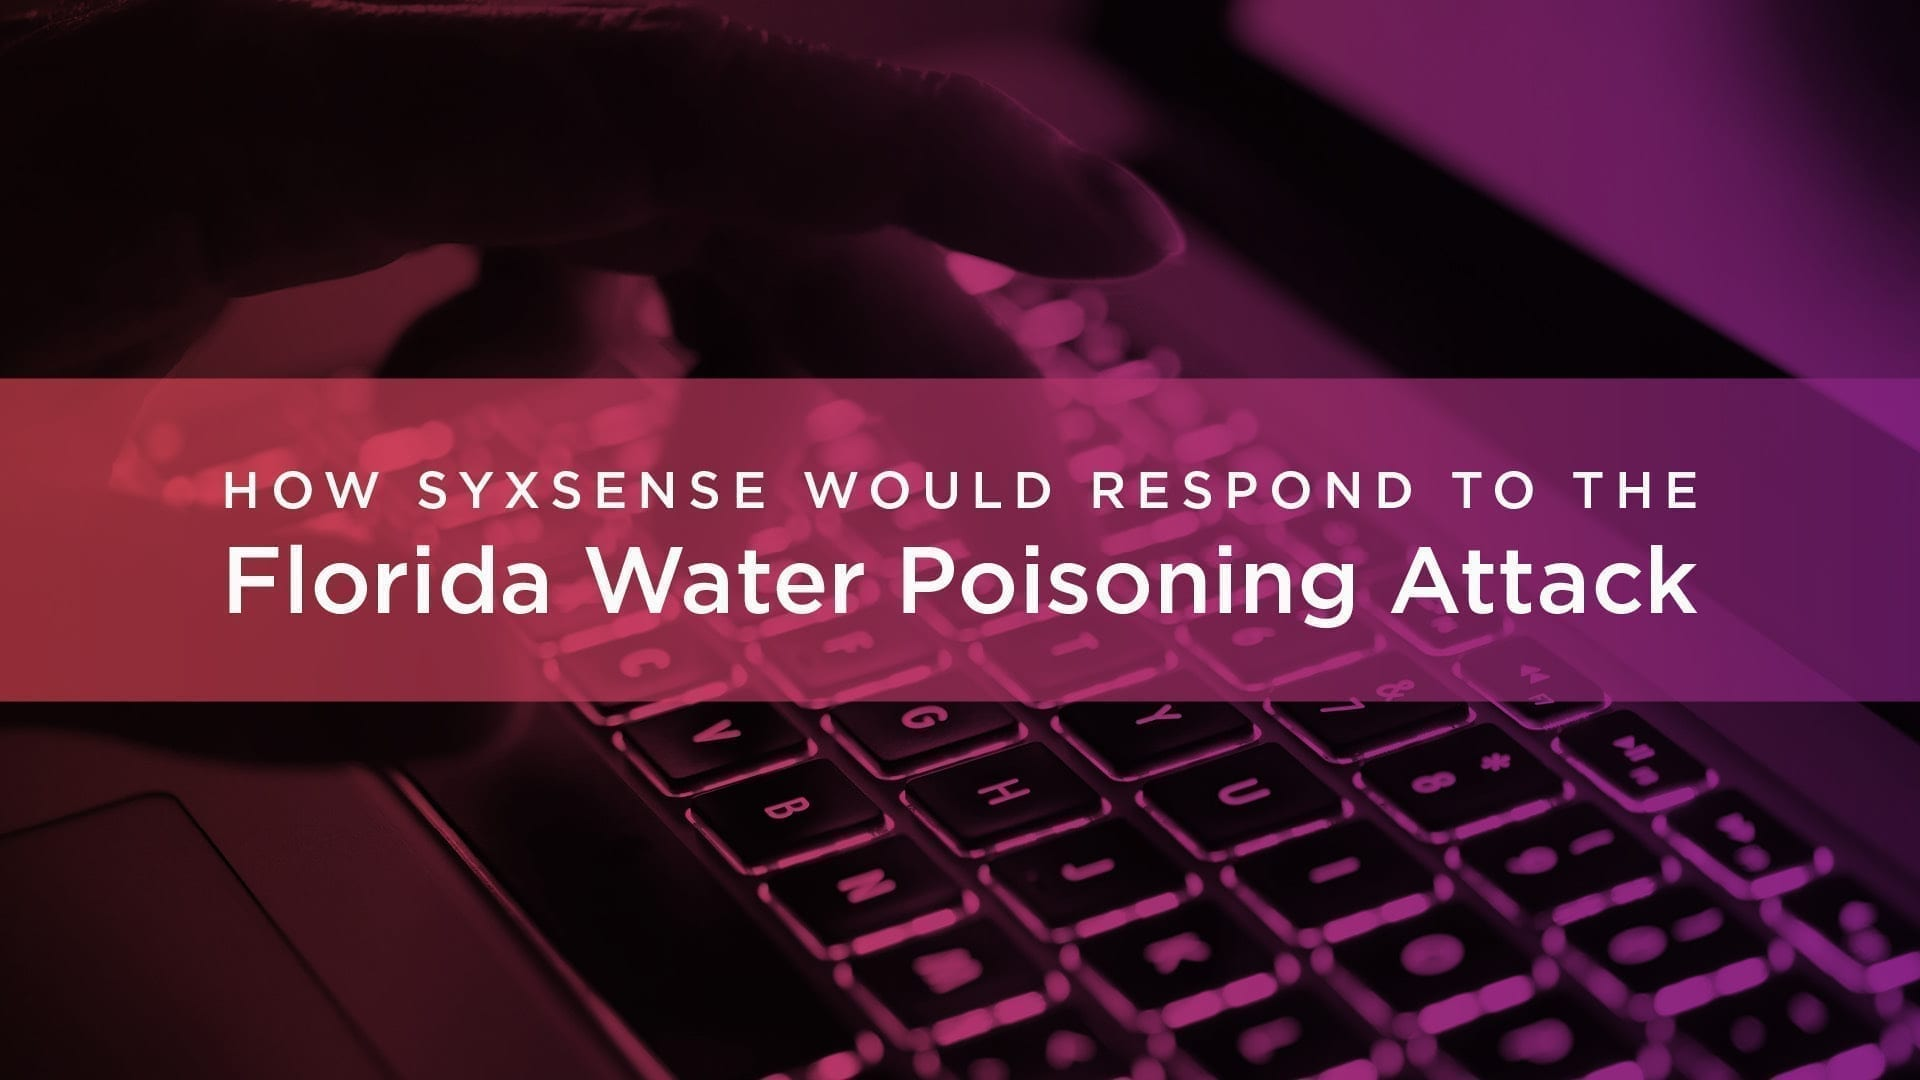 Florida Water Poisoning 1920x1080 1